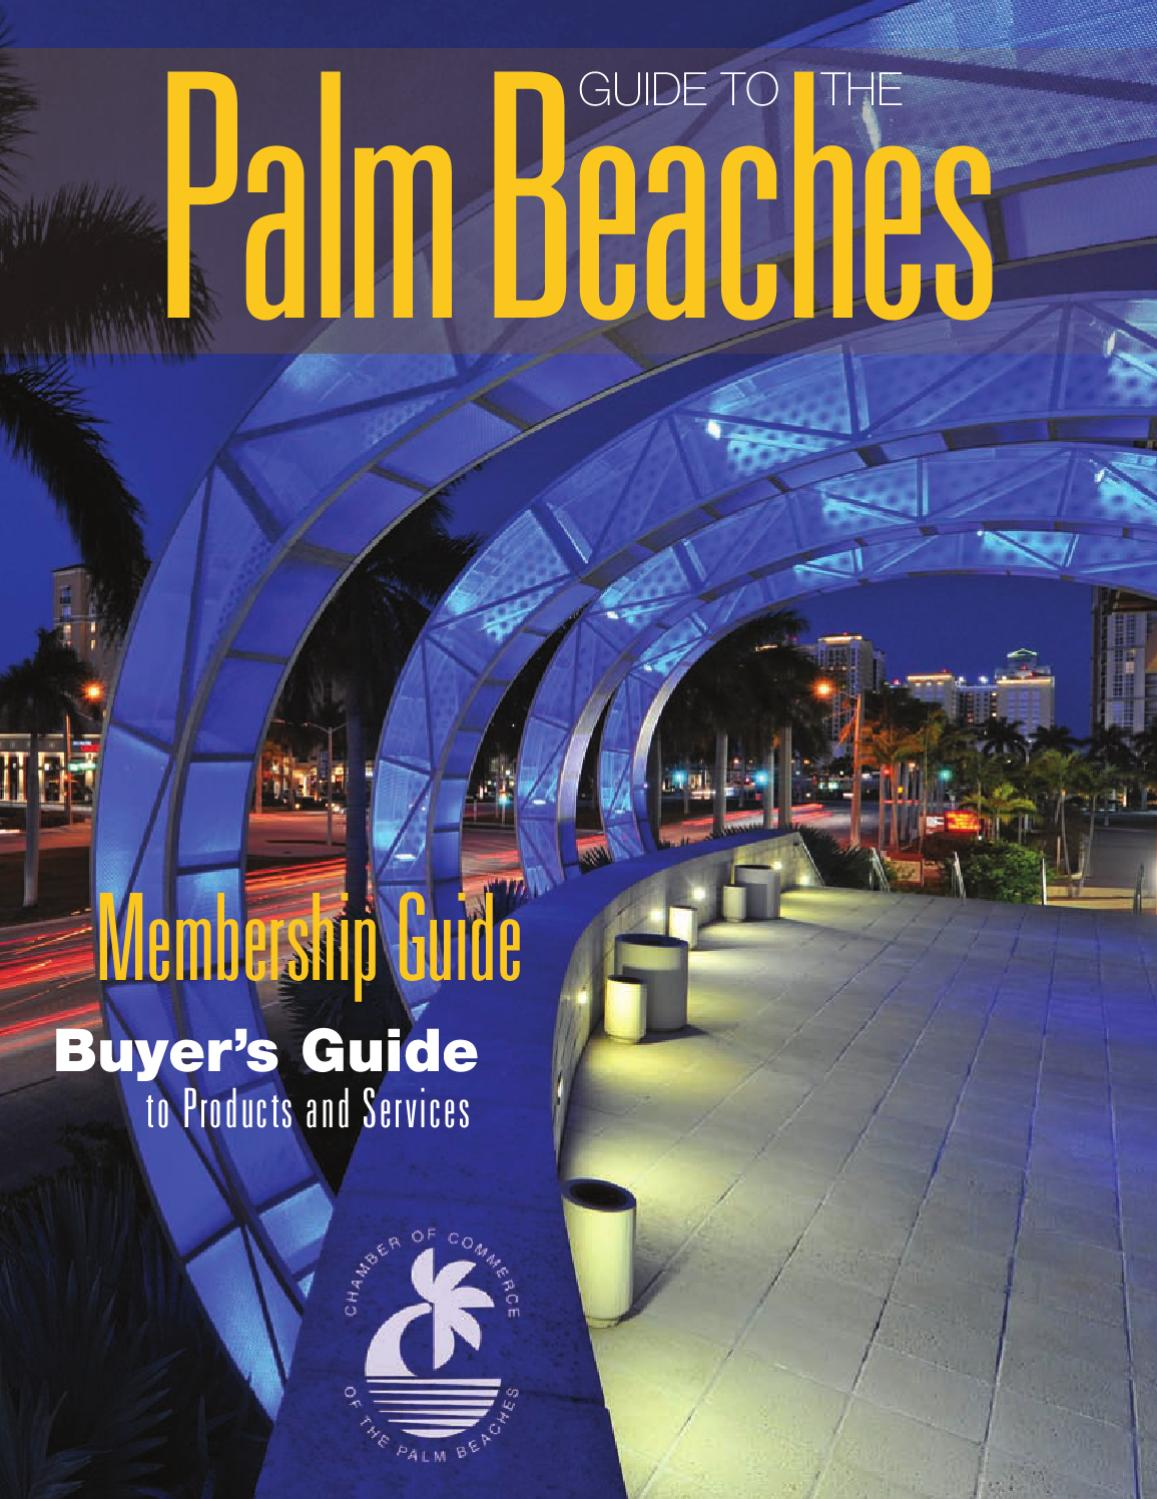 21851d45d Guide to the Palm Beaches 2011 by Passport Publications & Media Corporation  - issuu